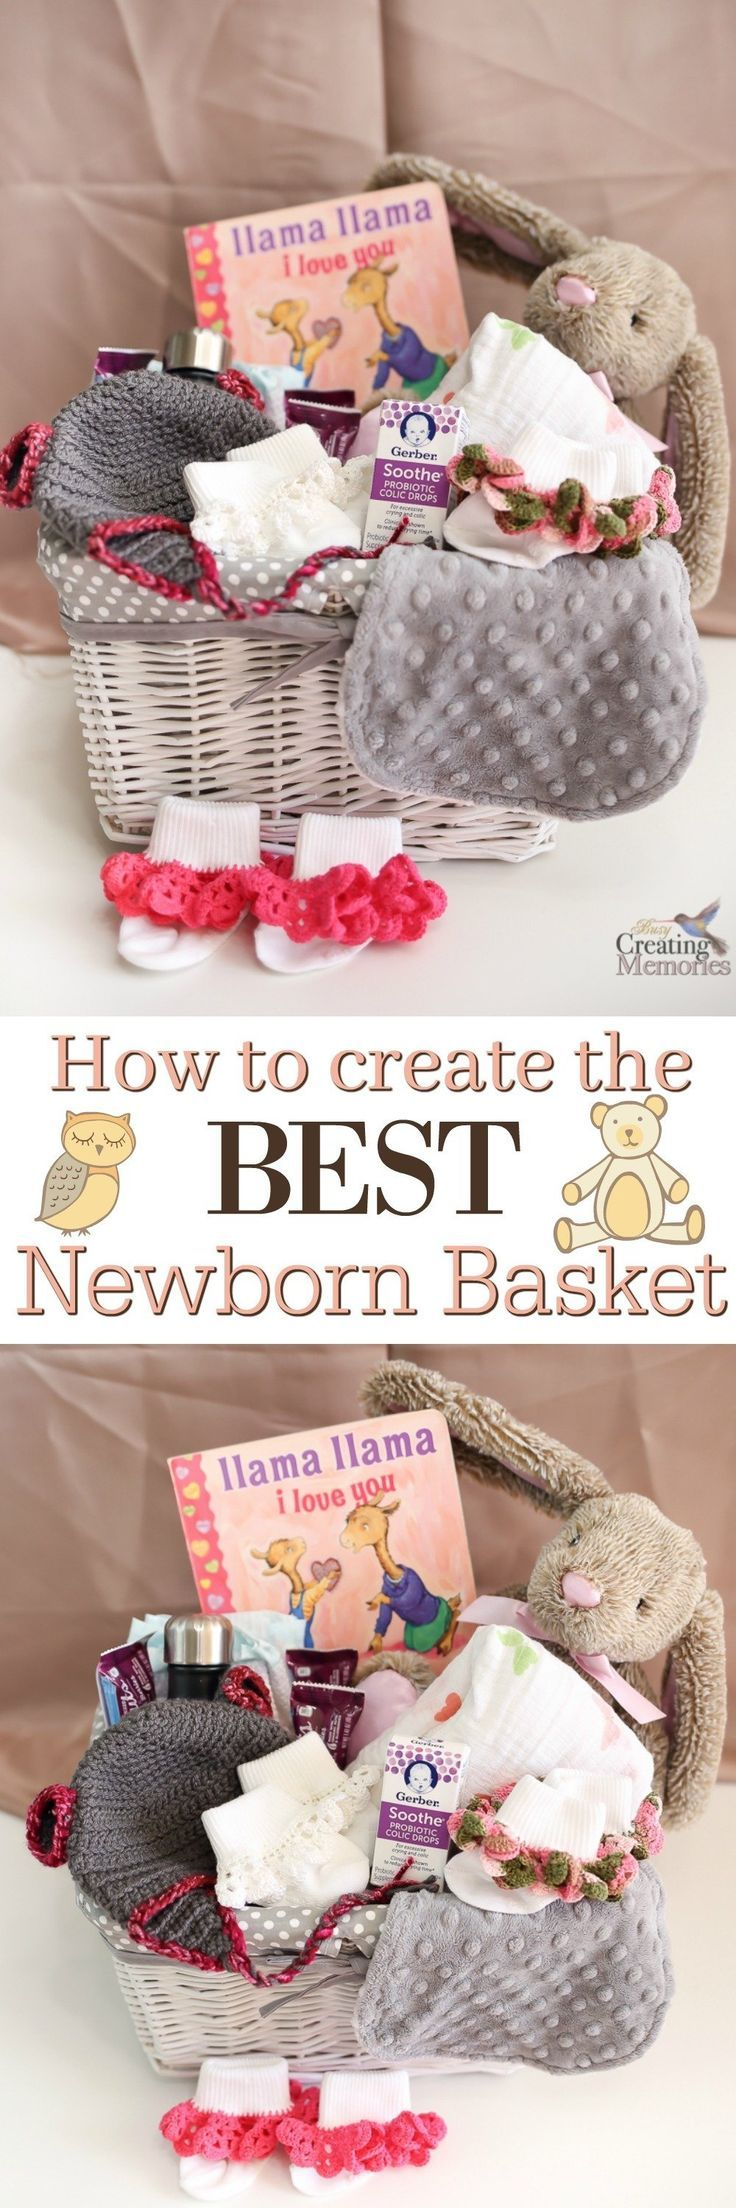 Don't give the same old boring gifts after a new baby arrives! Learn how to make the best newborn gift basket and the best items that stand out and help the new mom! via /2creatememories/